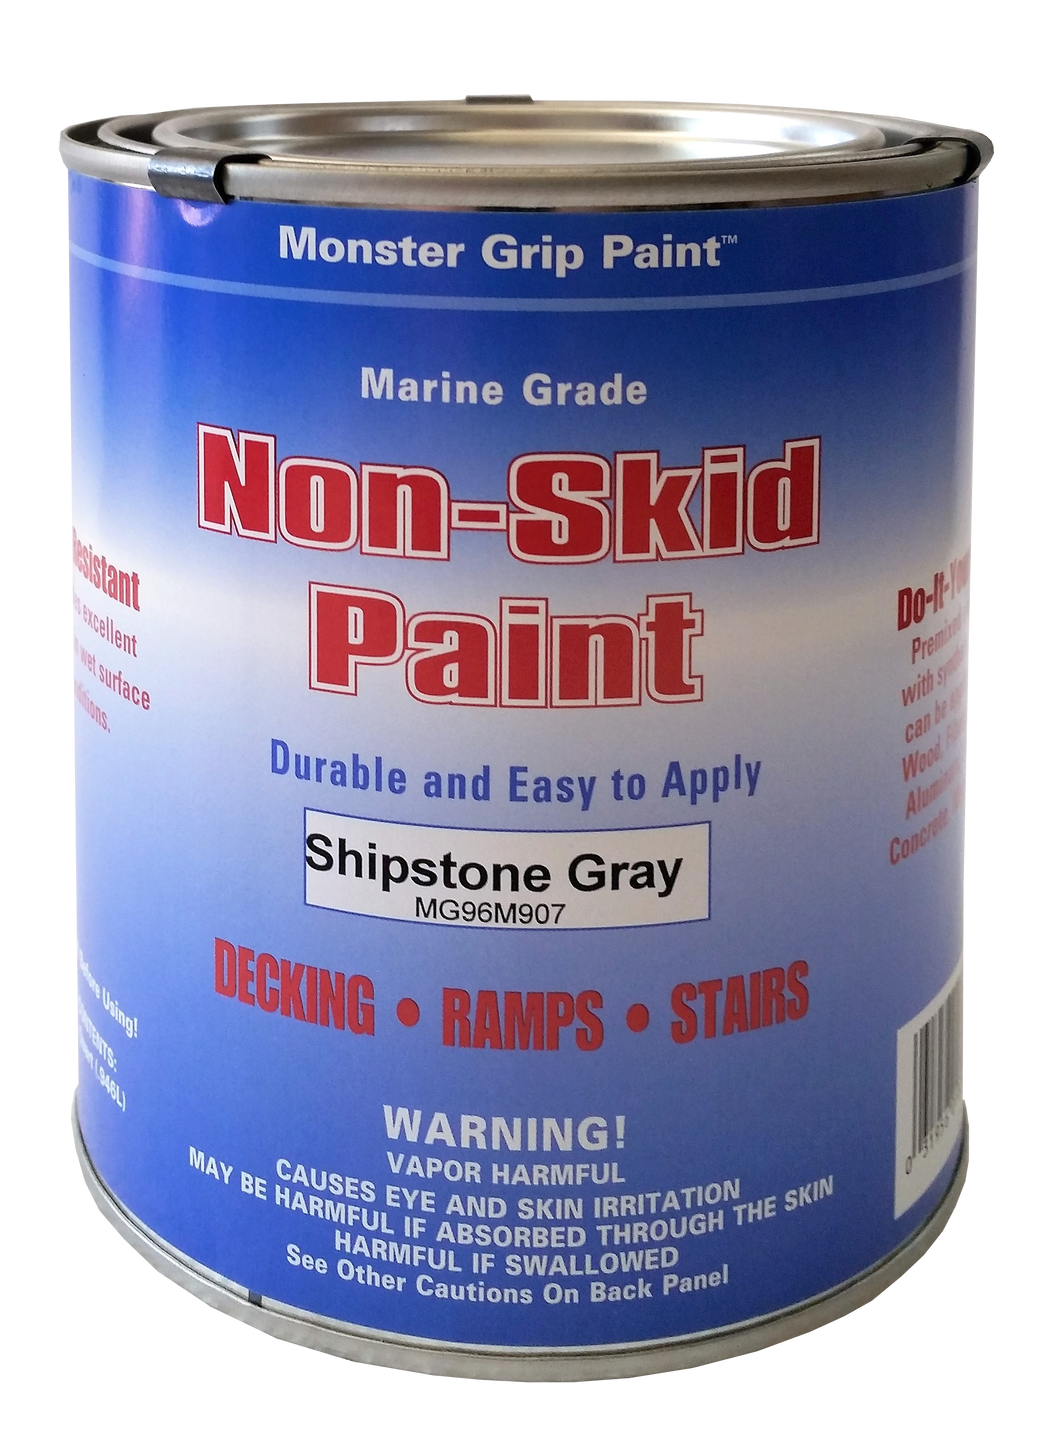 Non Skid Paint Marine Epoxy * Made in USA - Quart Qty. 2